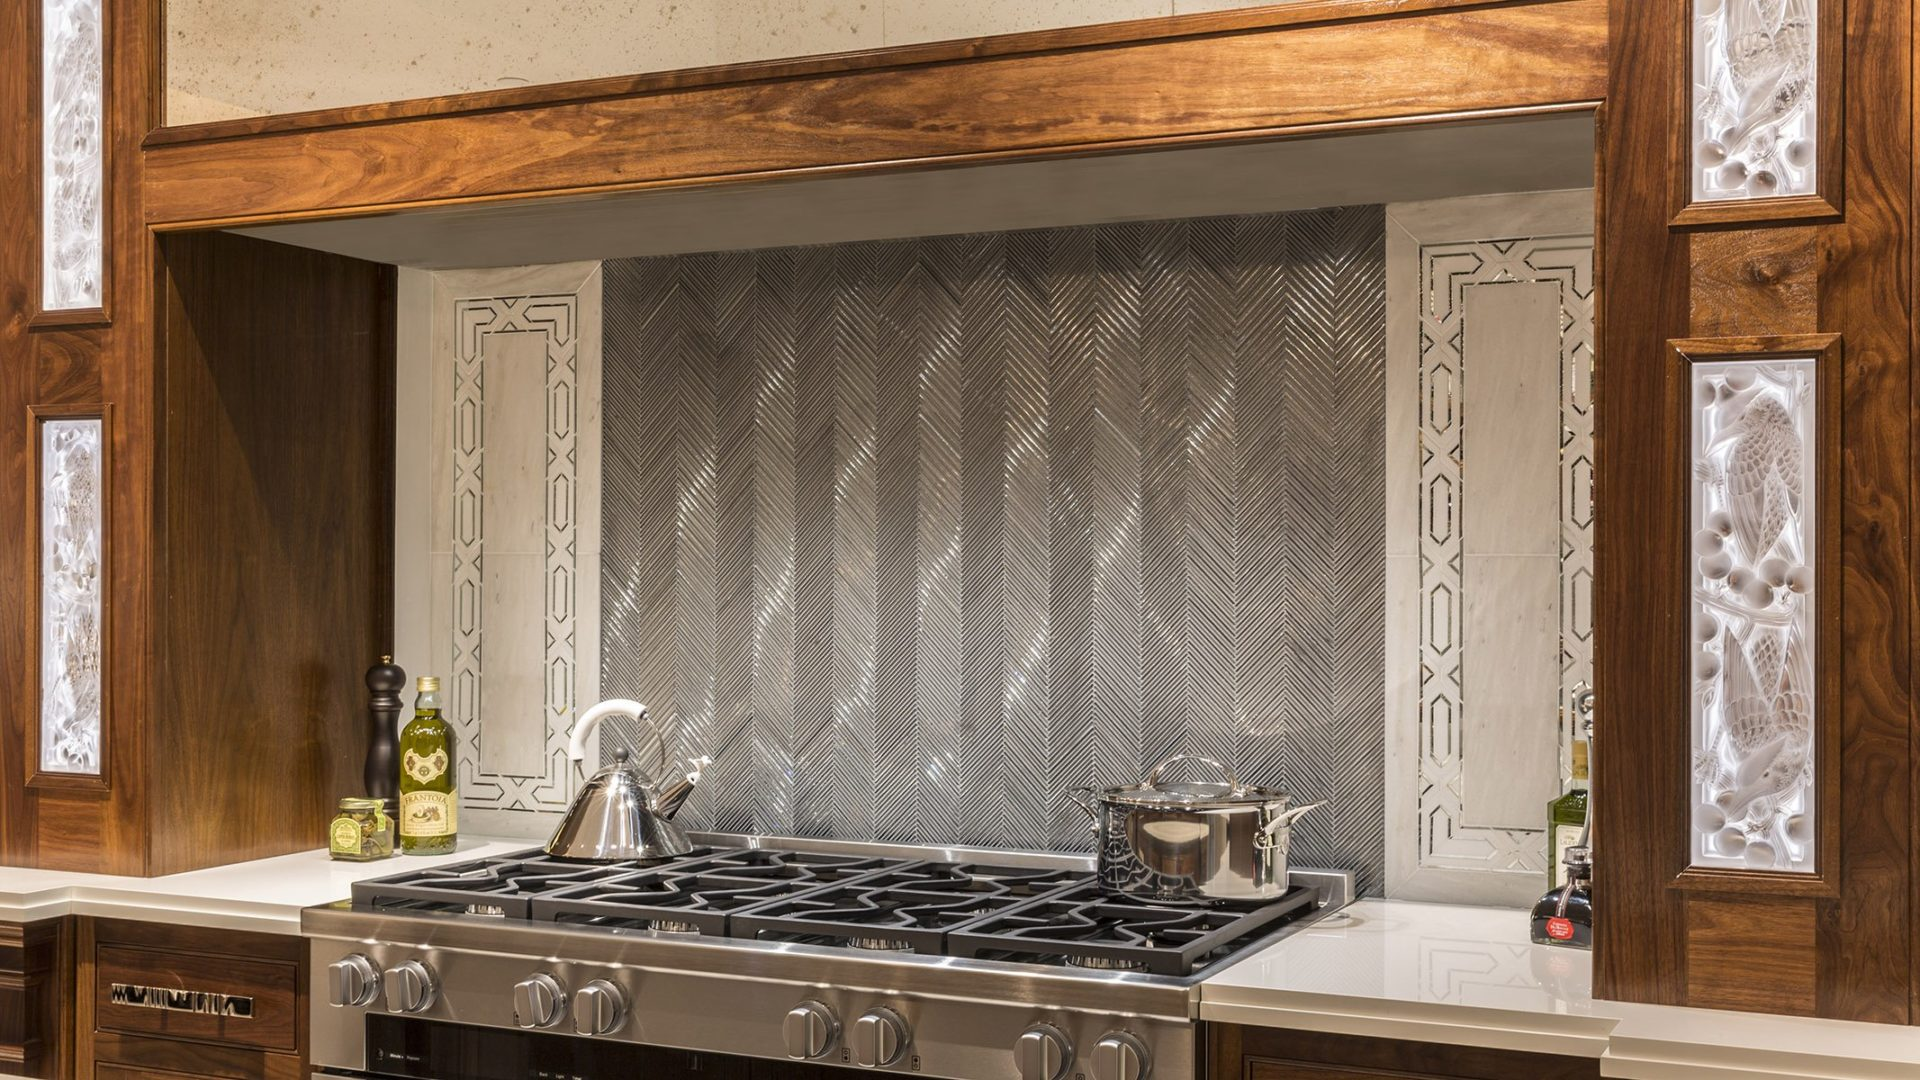 Textile Glass Mosaic in Silver Silk in the Ikat pattern creates a hearth effect. White Haze marble and an Allure radiance border complete the design.